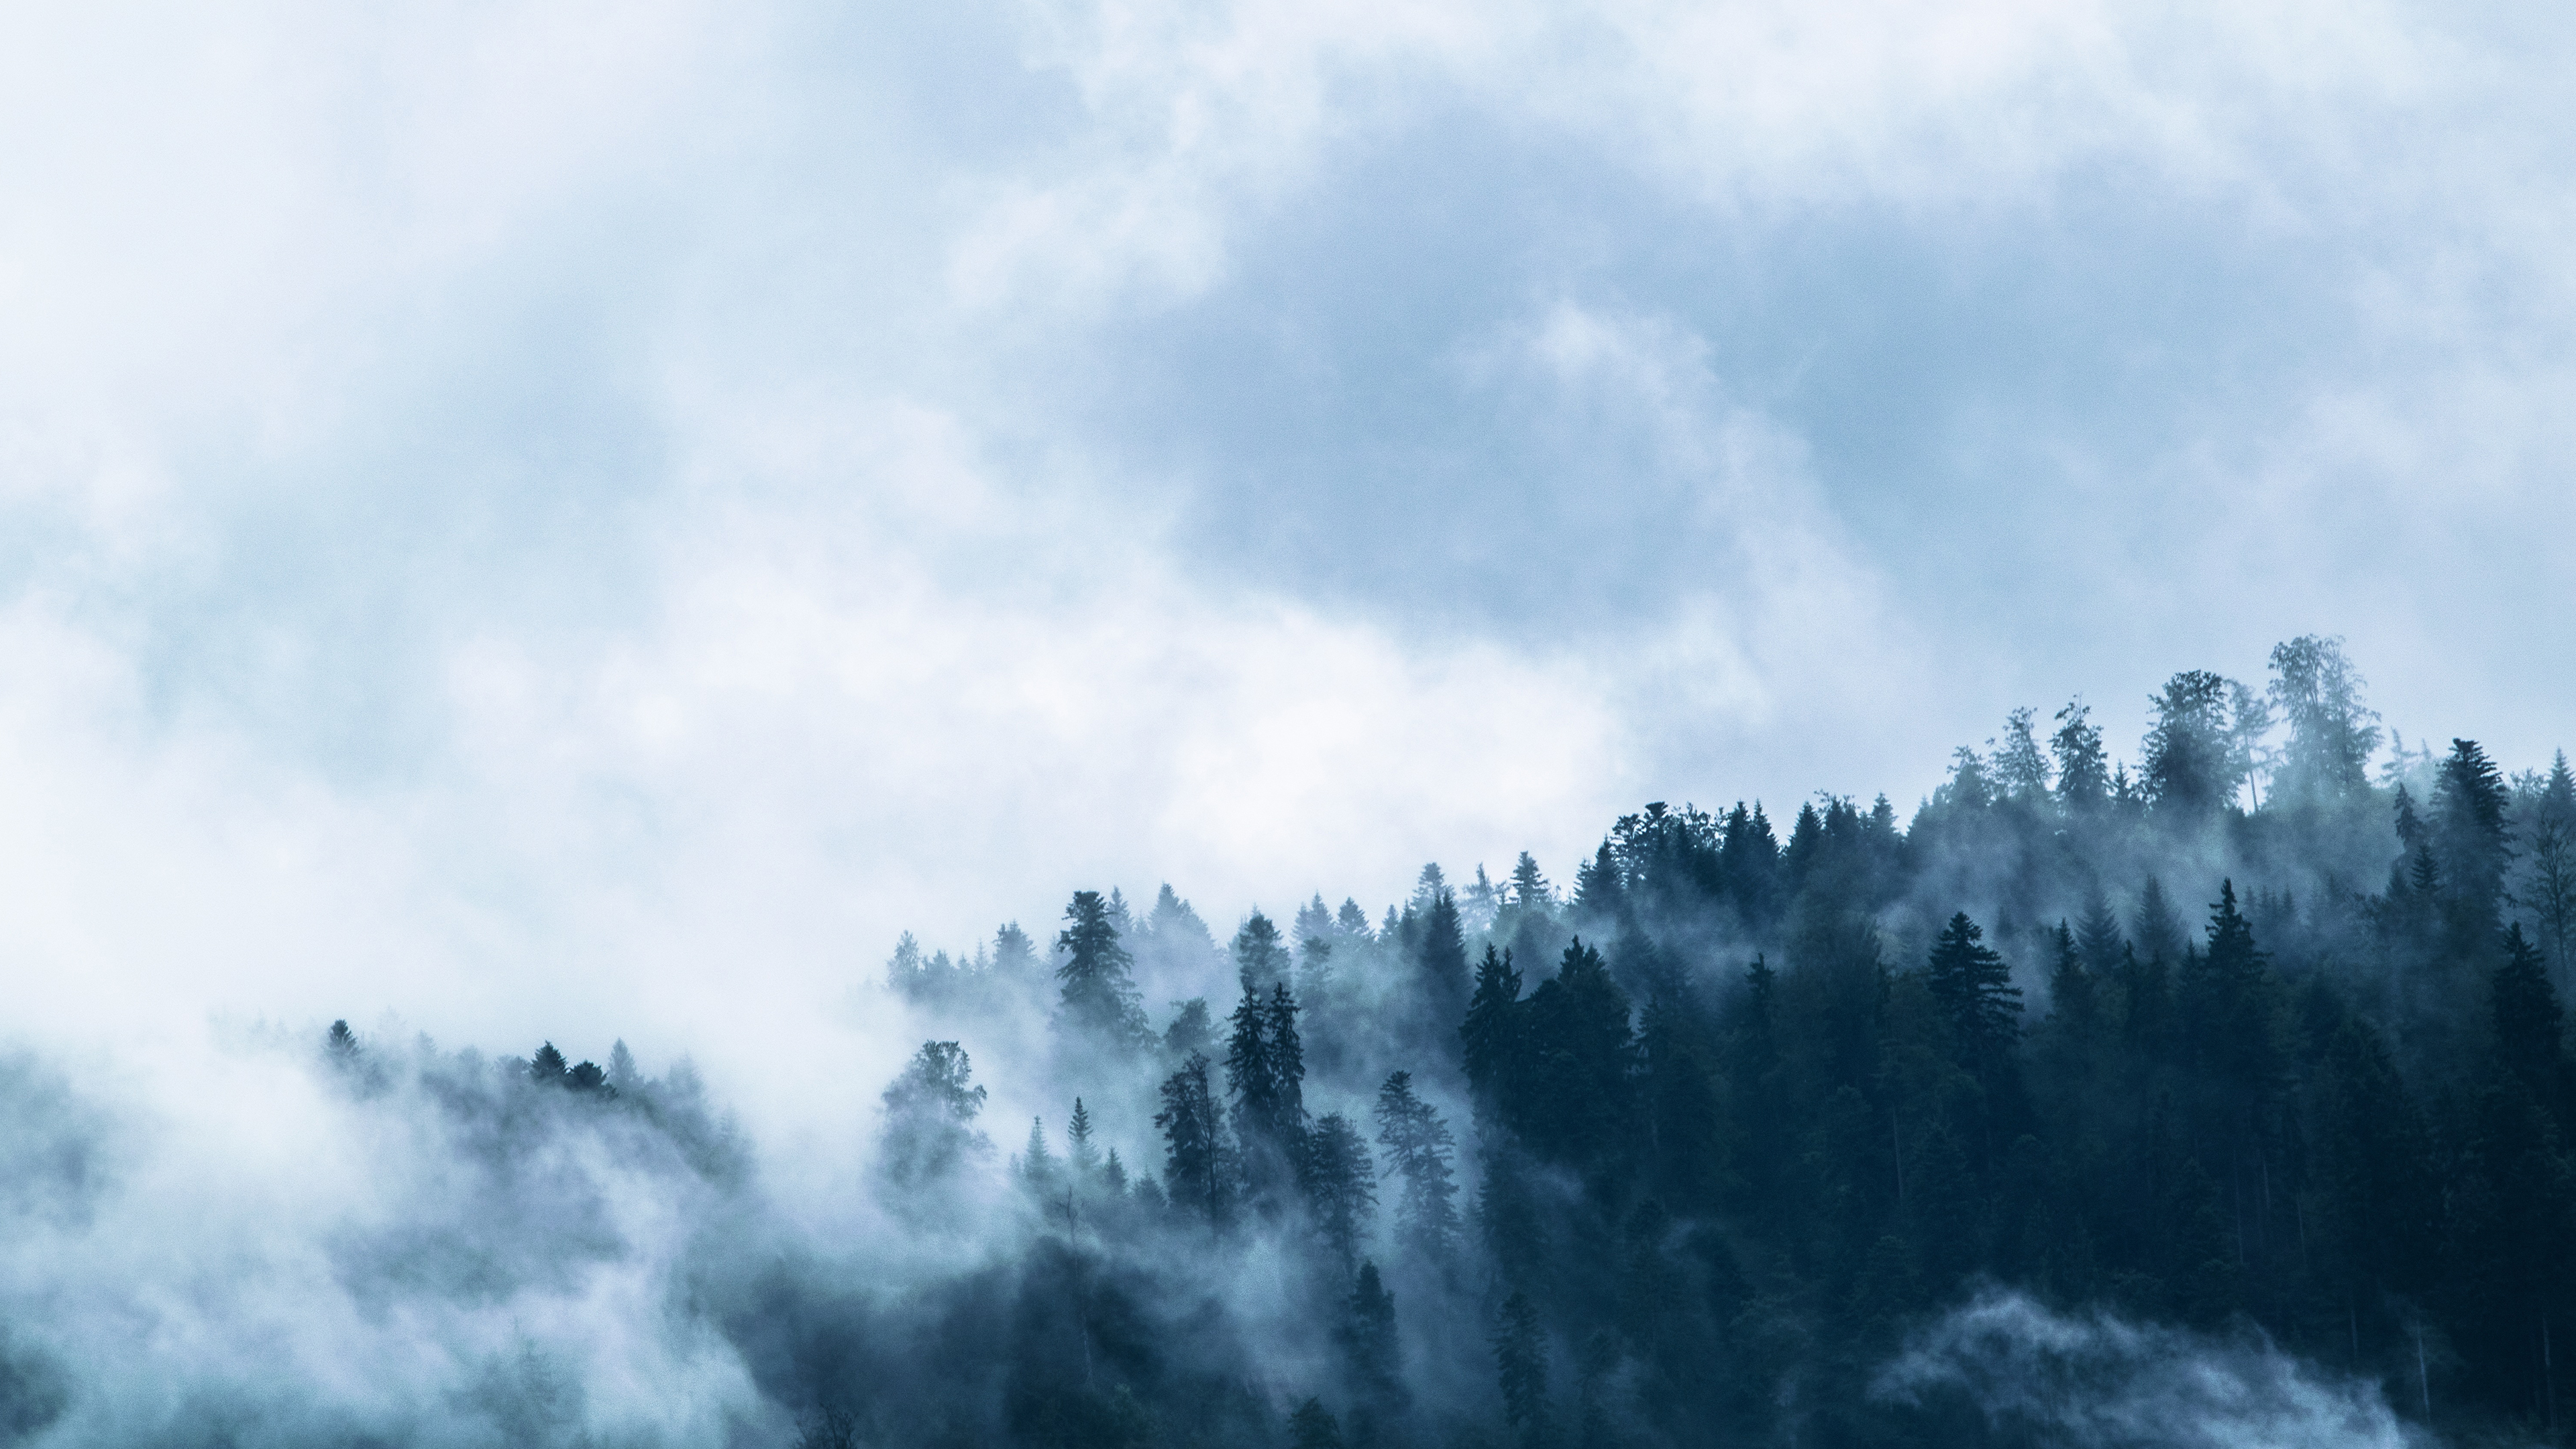 free foggy chromebook wallpaper ready for download